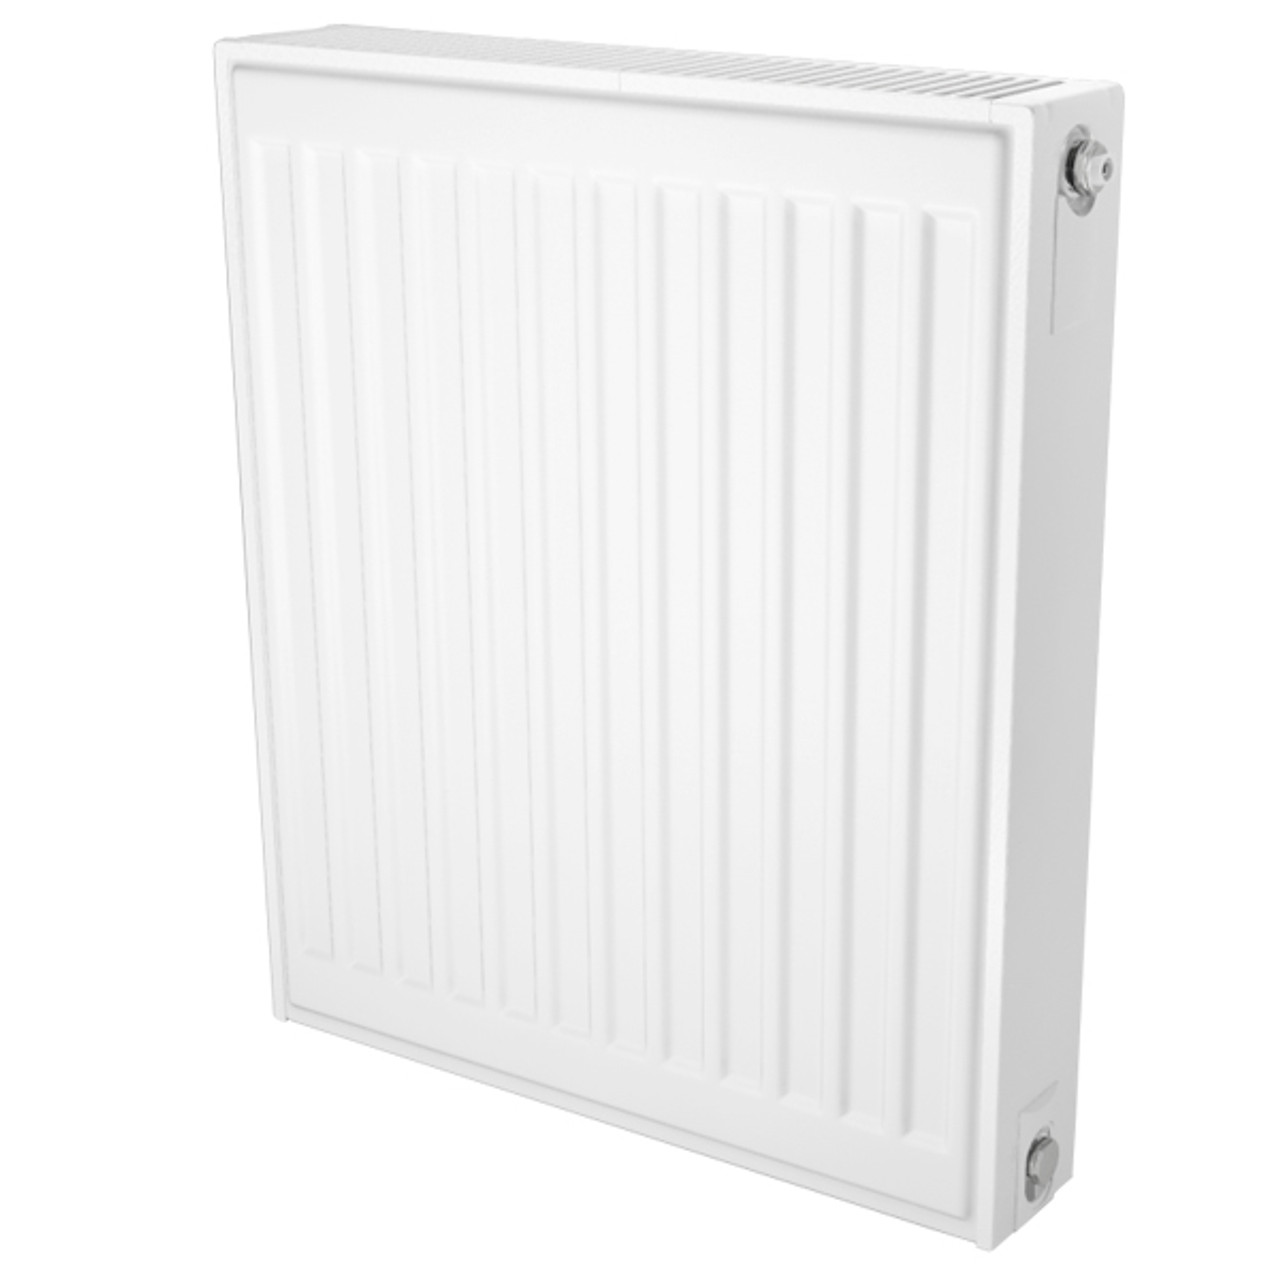 Design Convector Radiator.Central Heating Radiator Type 22 Double Panel Convector Radiator 3000mm Long 600mm High Side Connection